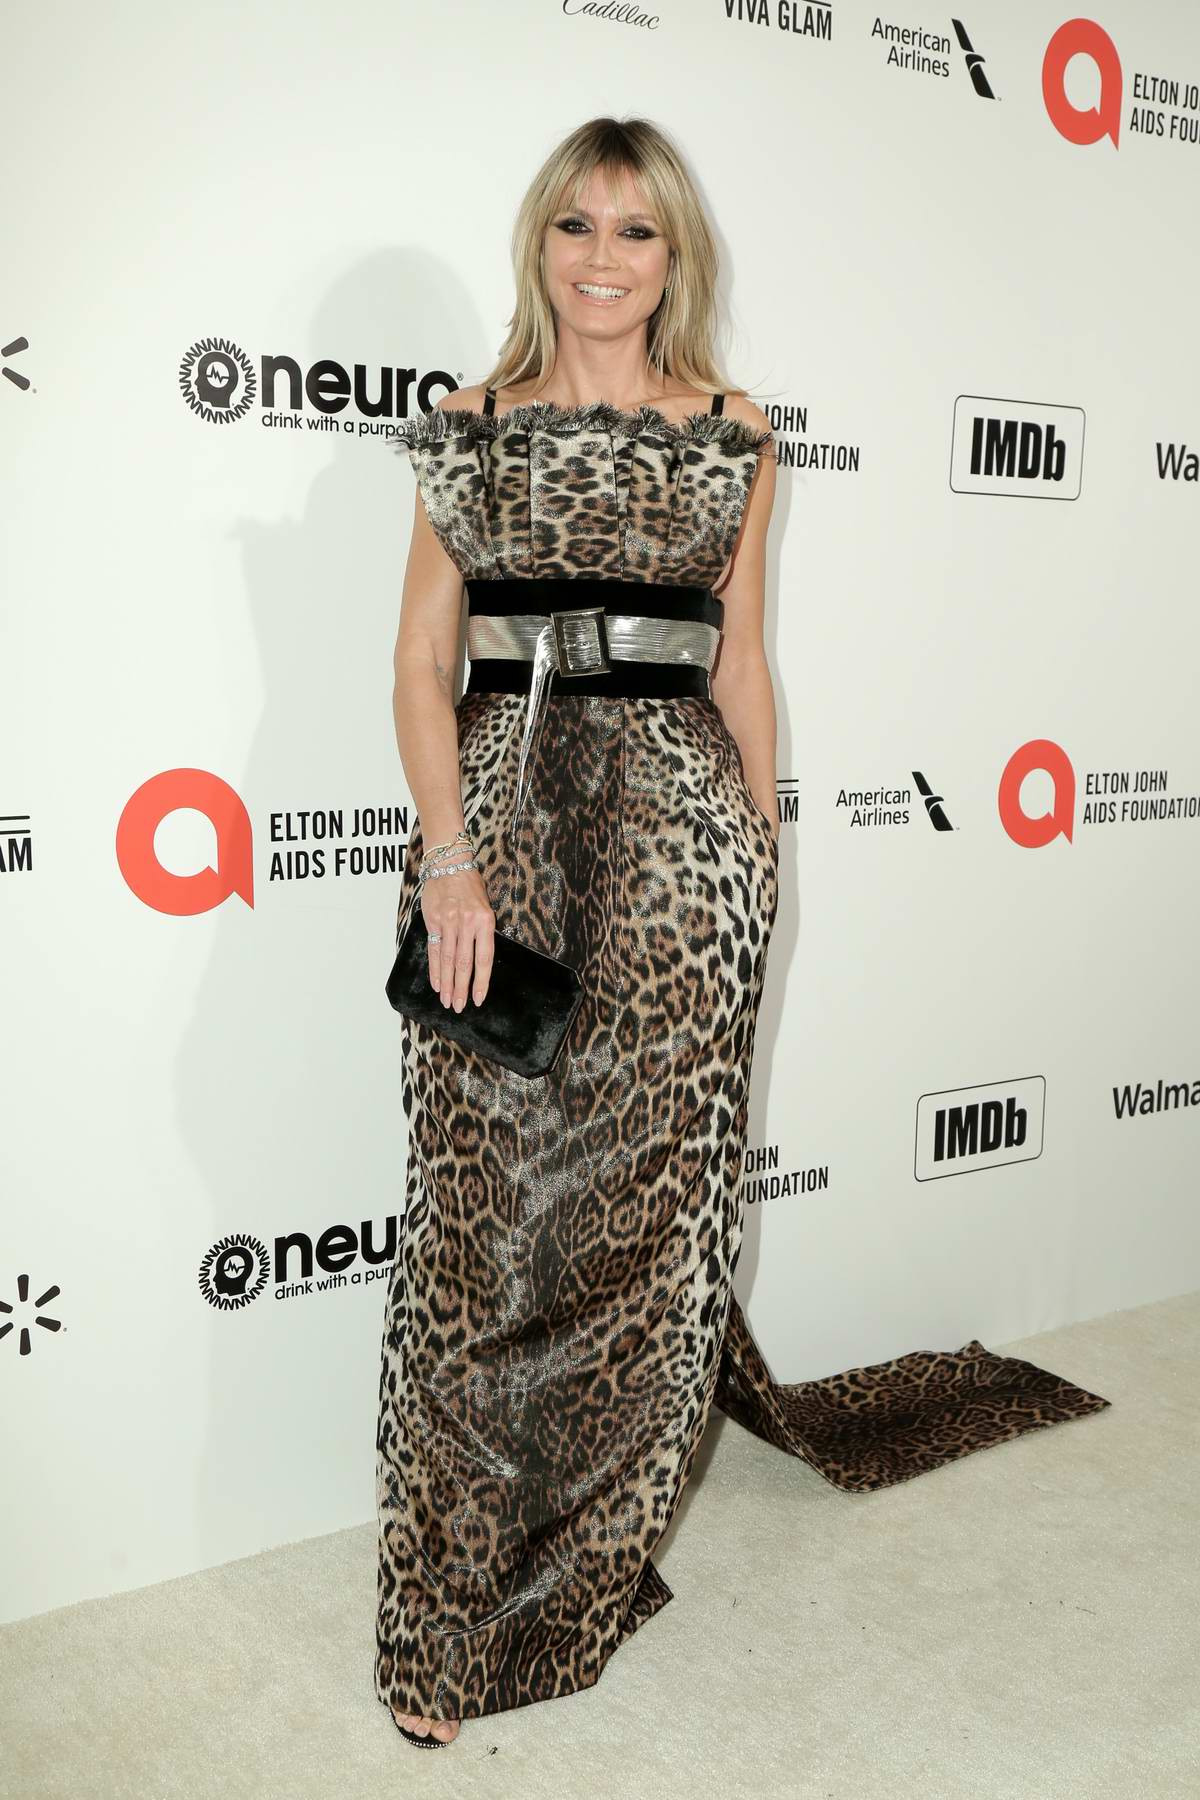 Heidi Klum attends the 28th Annual Elton John AIDS Foundation Academy Awards Viewing Party in West Hollywood, California